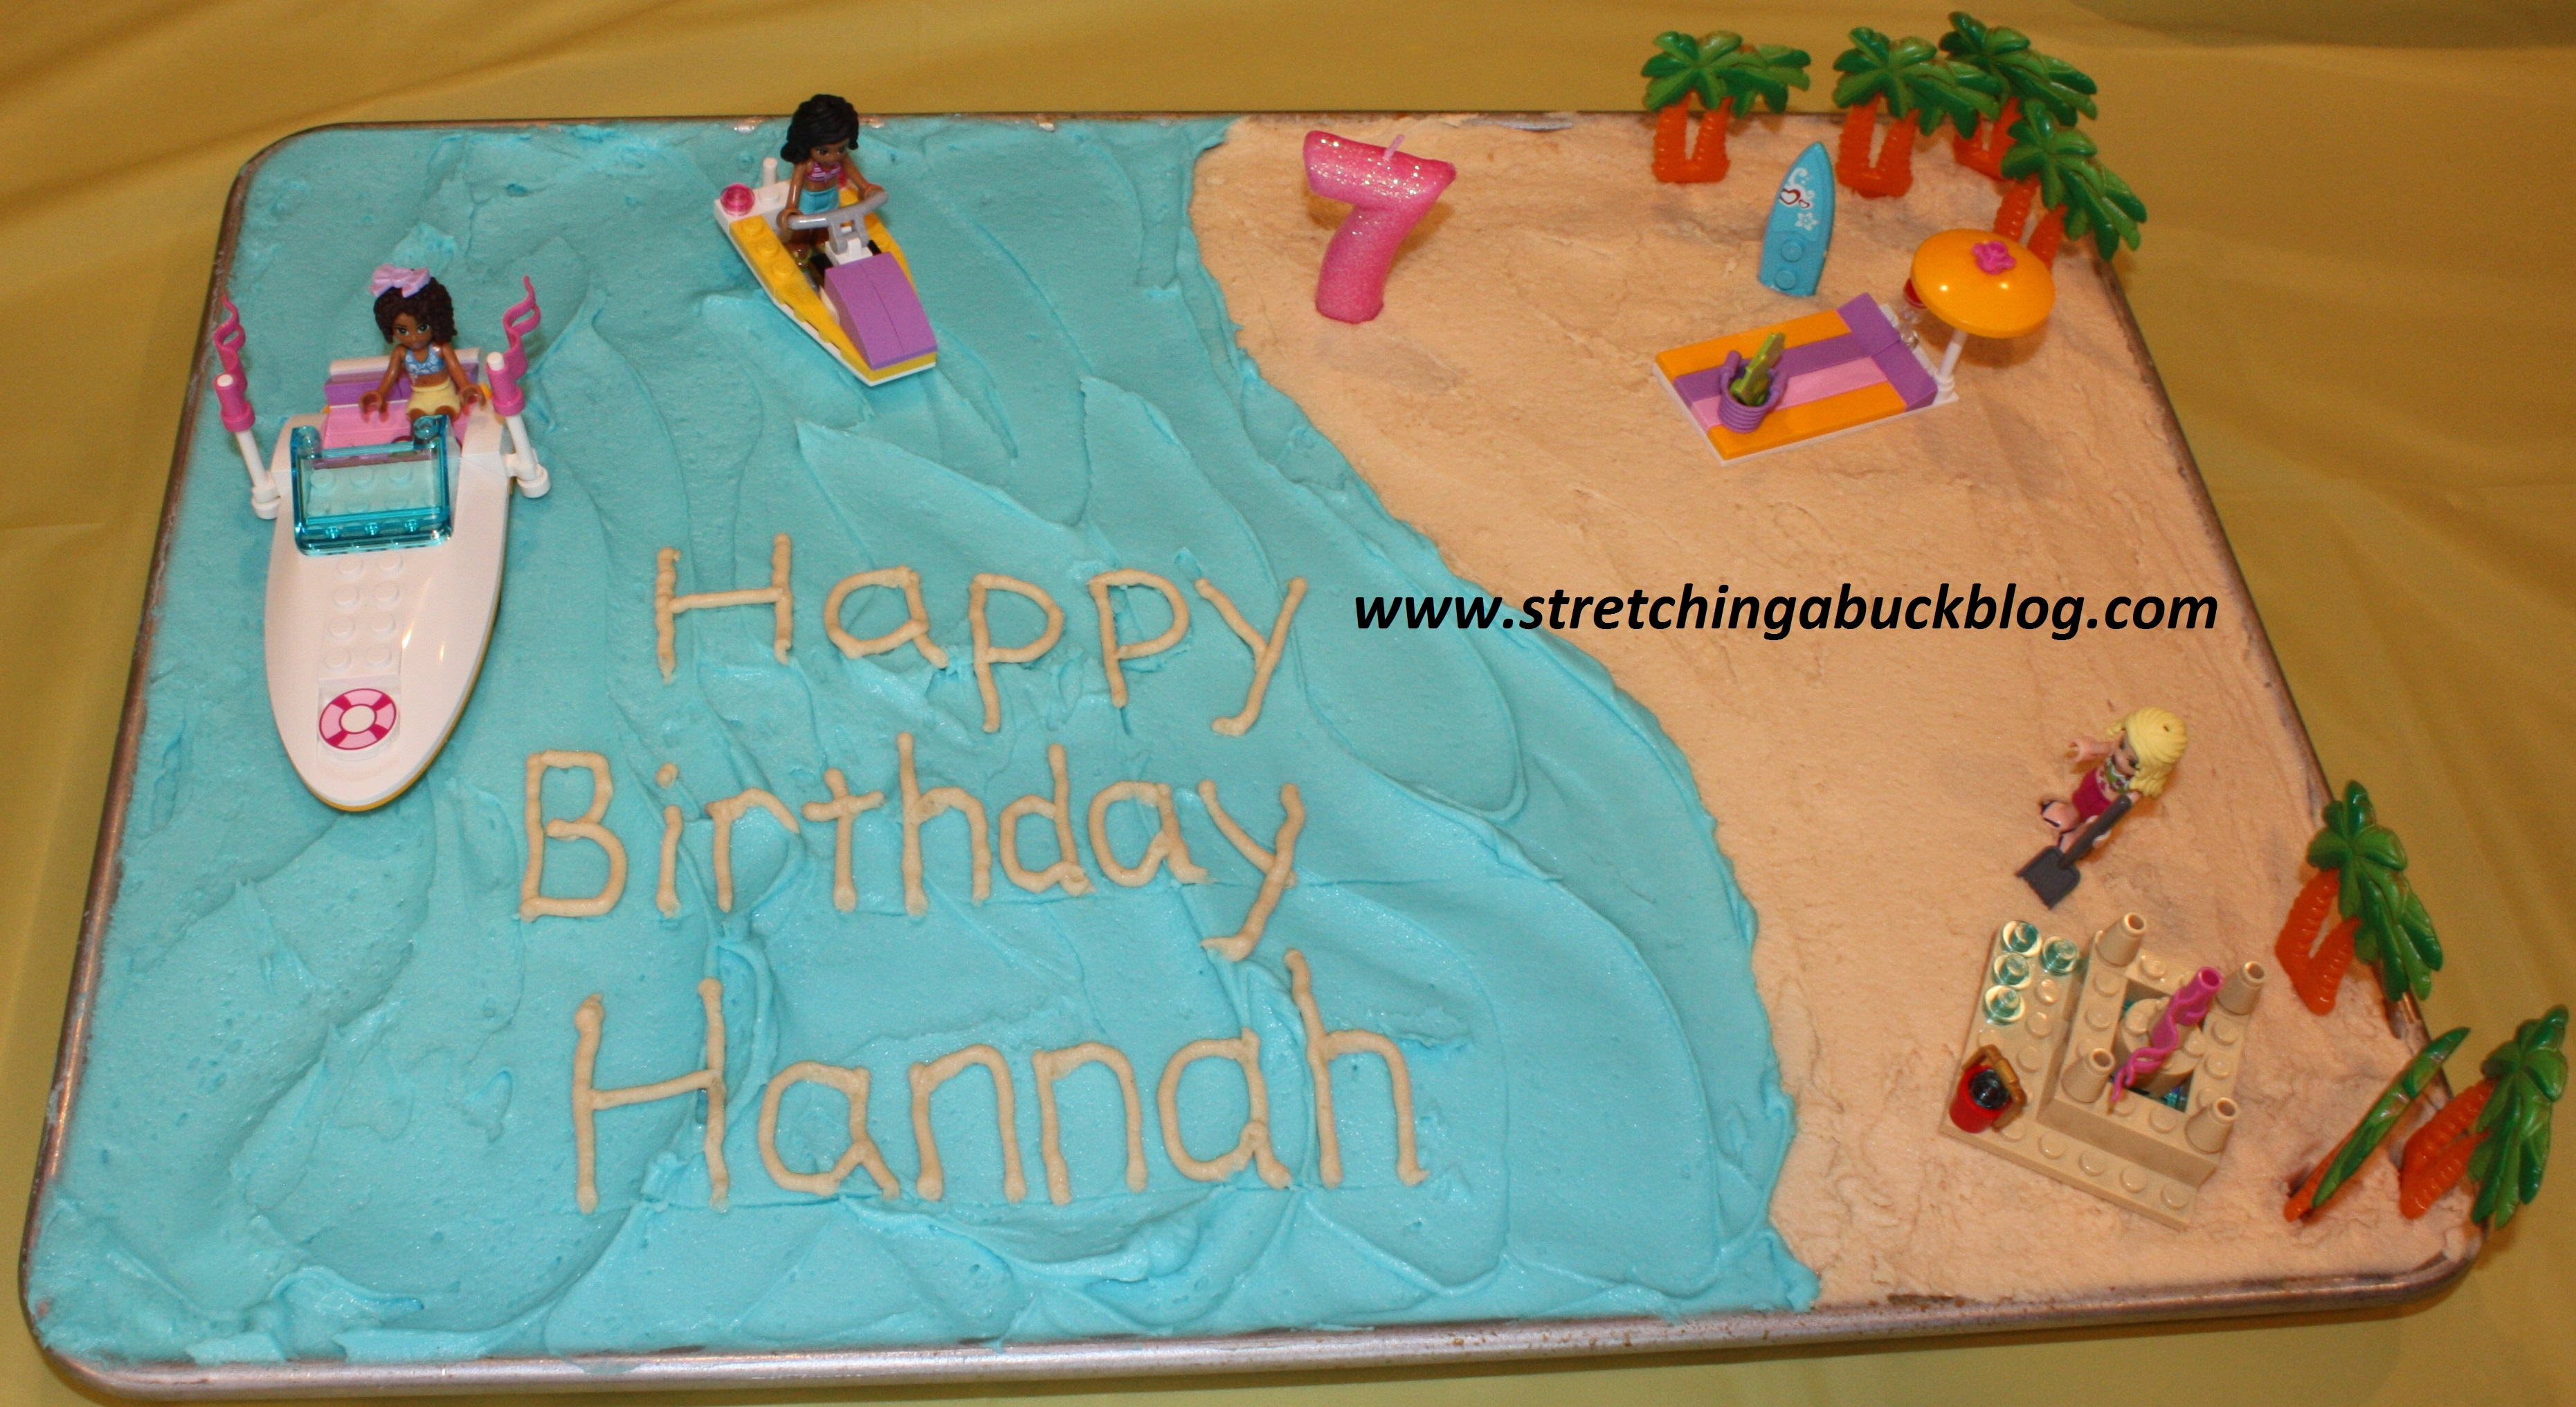 How To Make A Budget Beach Party Birthday Cake Stretching A Buck